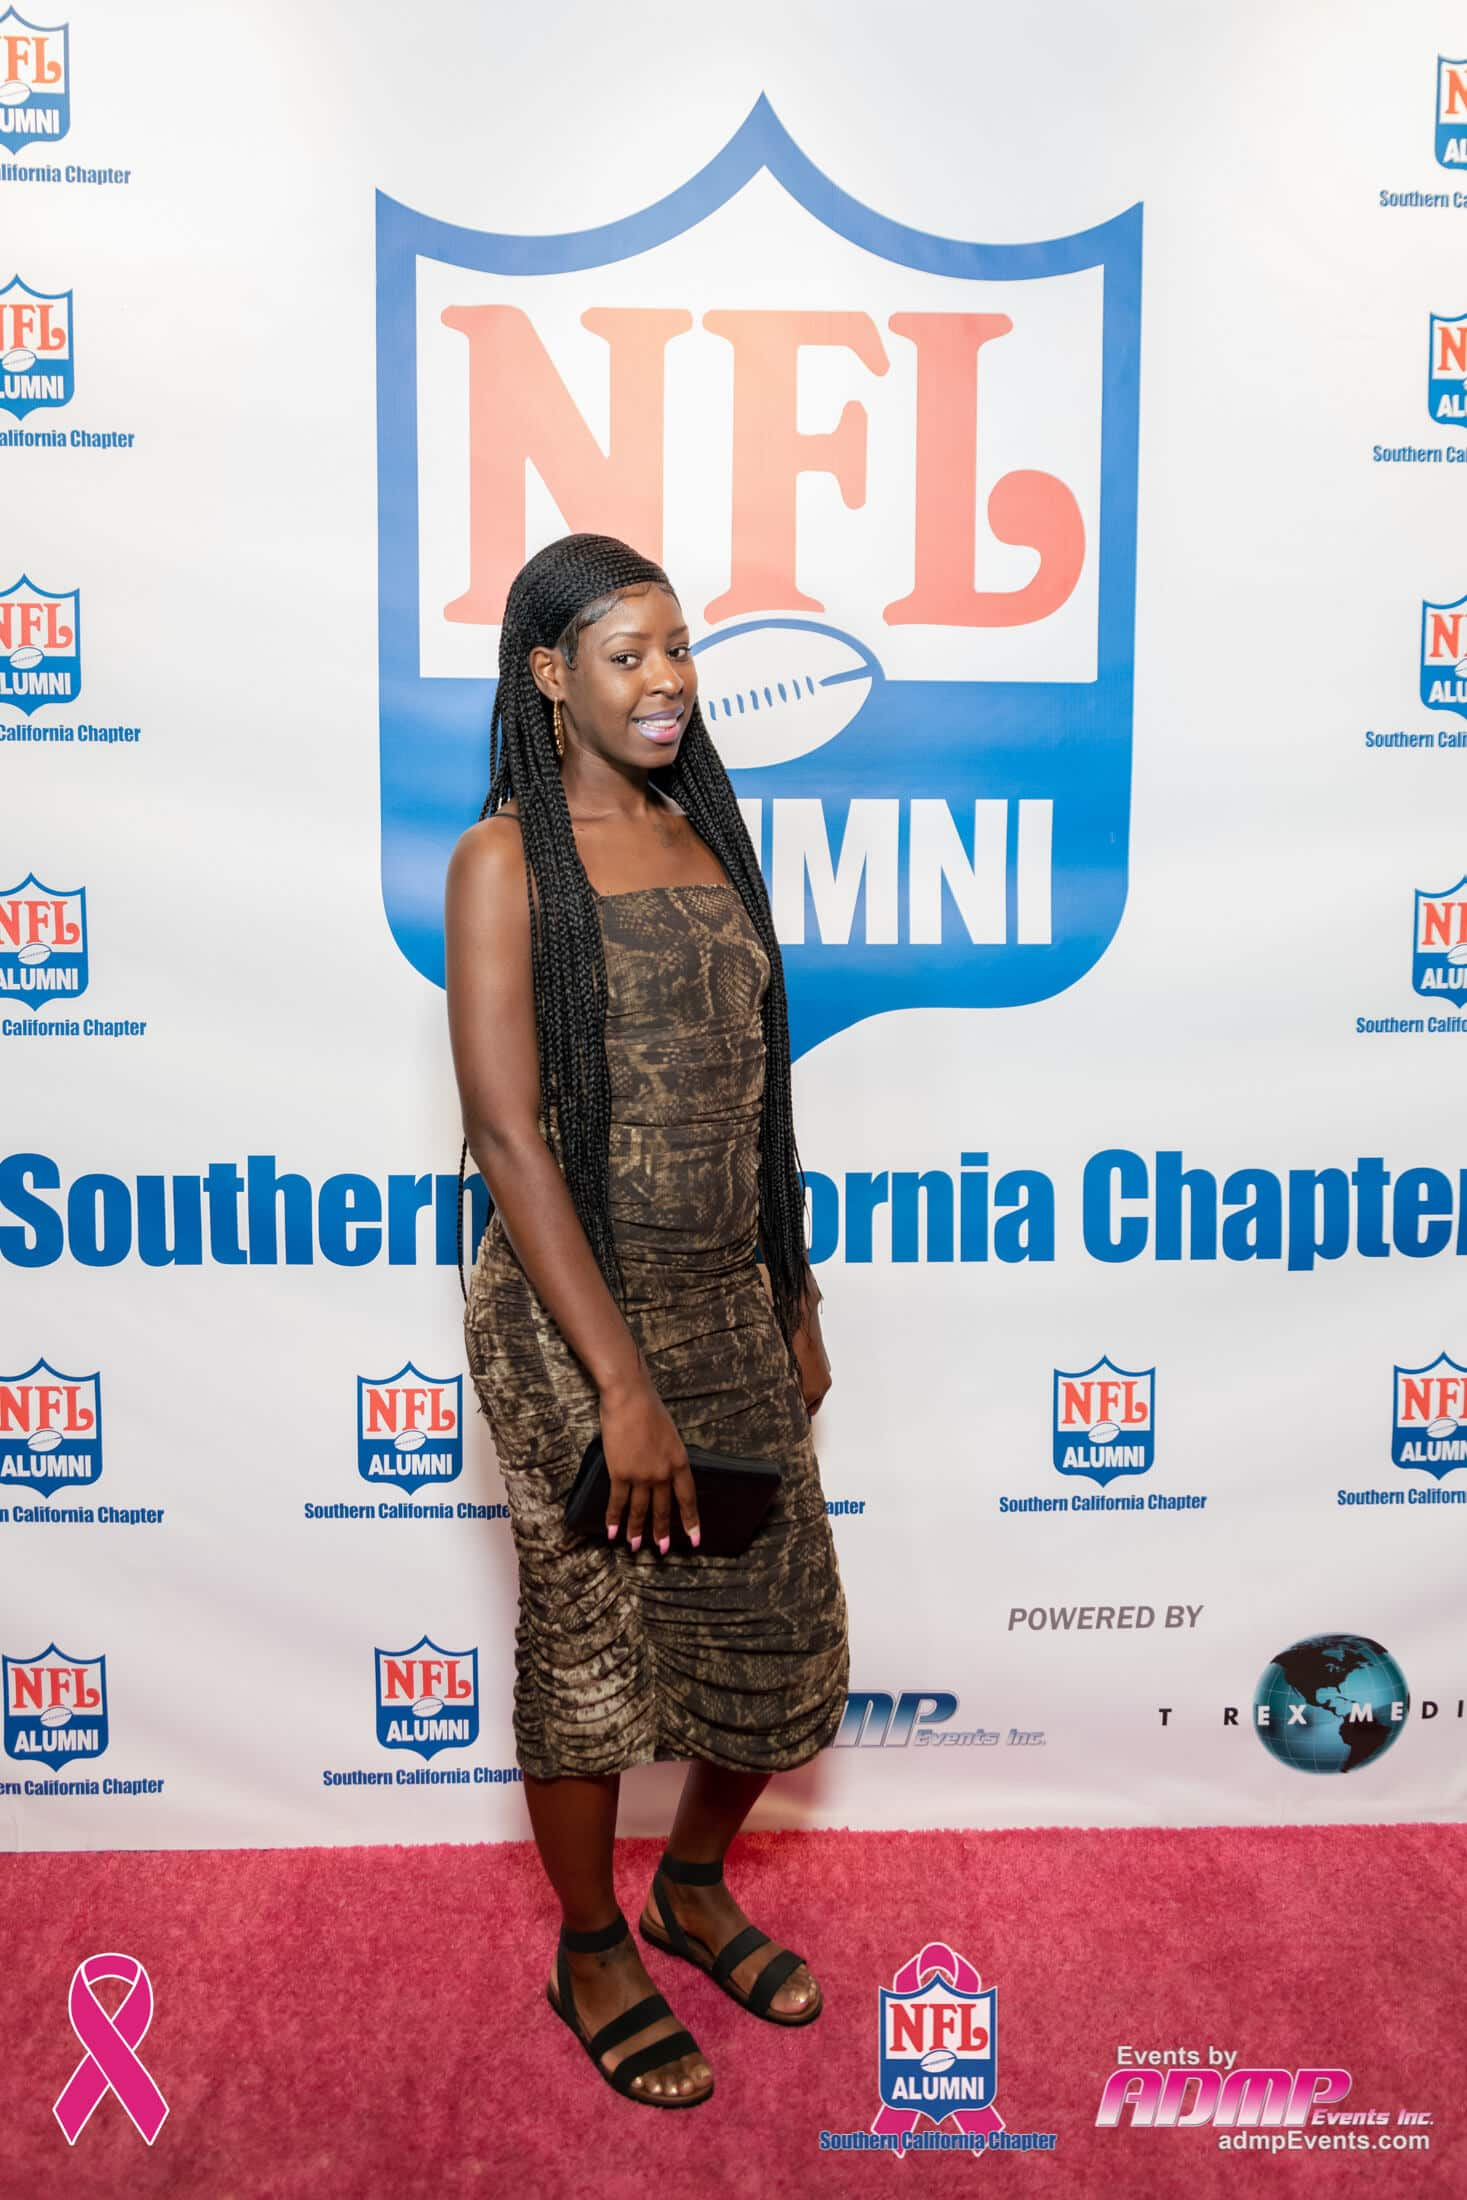 NFL Alumni SoCal Charity Event Series Breast Cancer Event 10-14-19-274